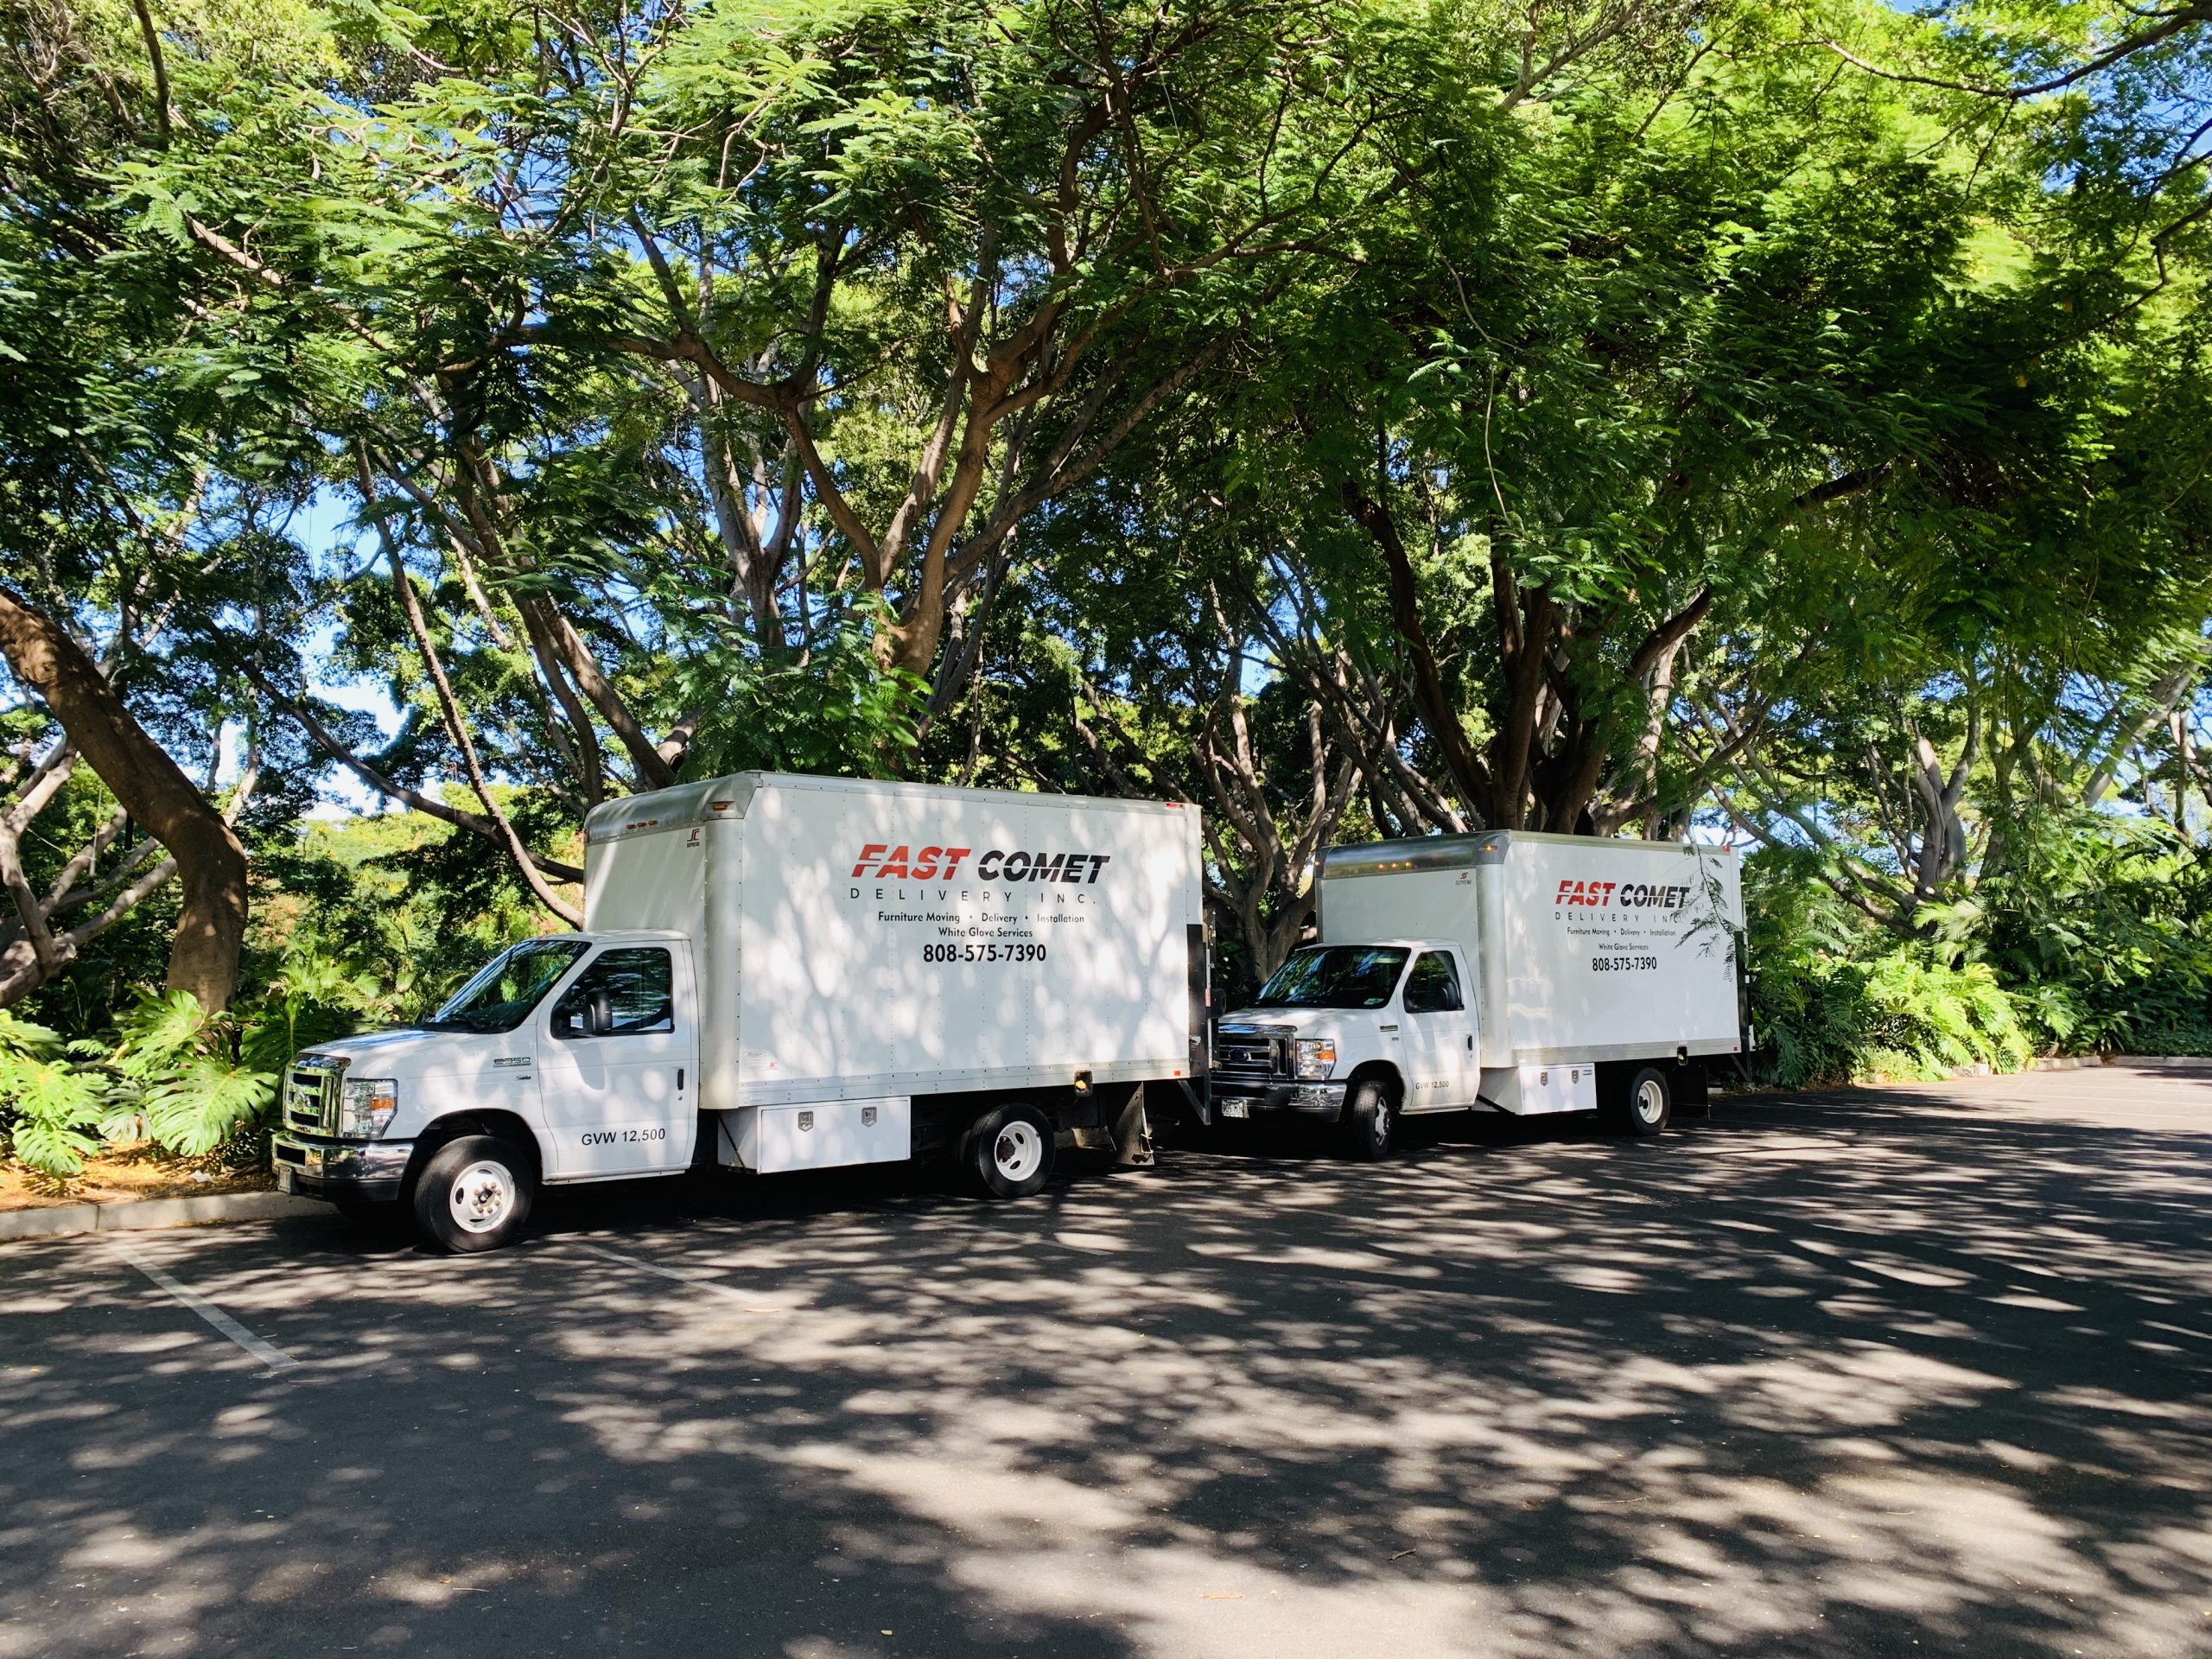 Fast Comet Delivery Truck 19 - Maui Hawaii